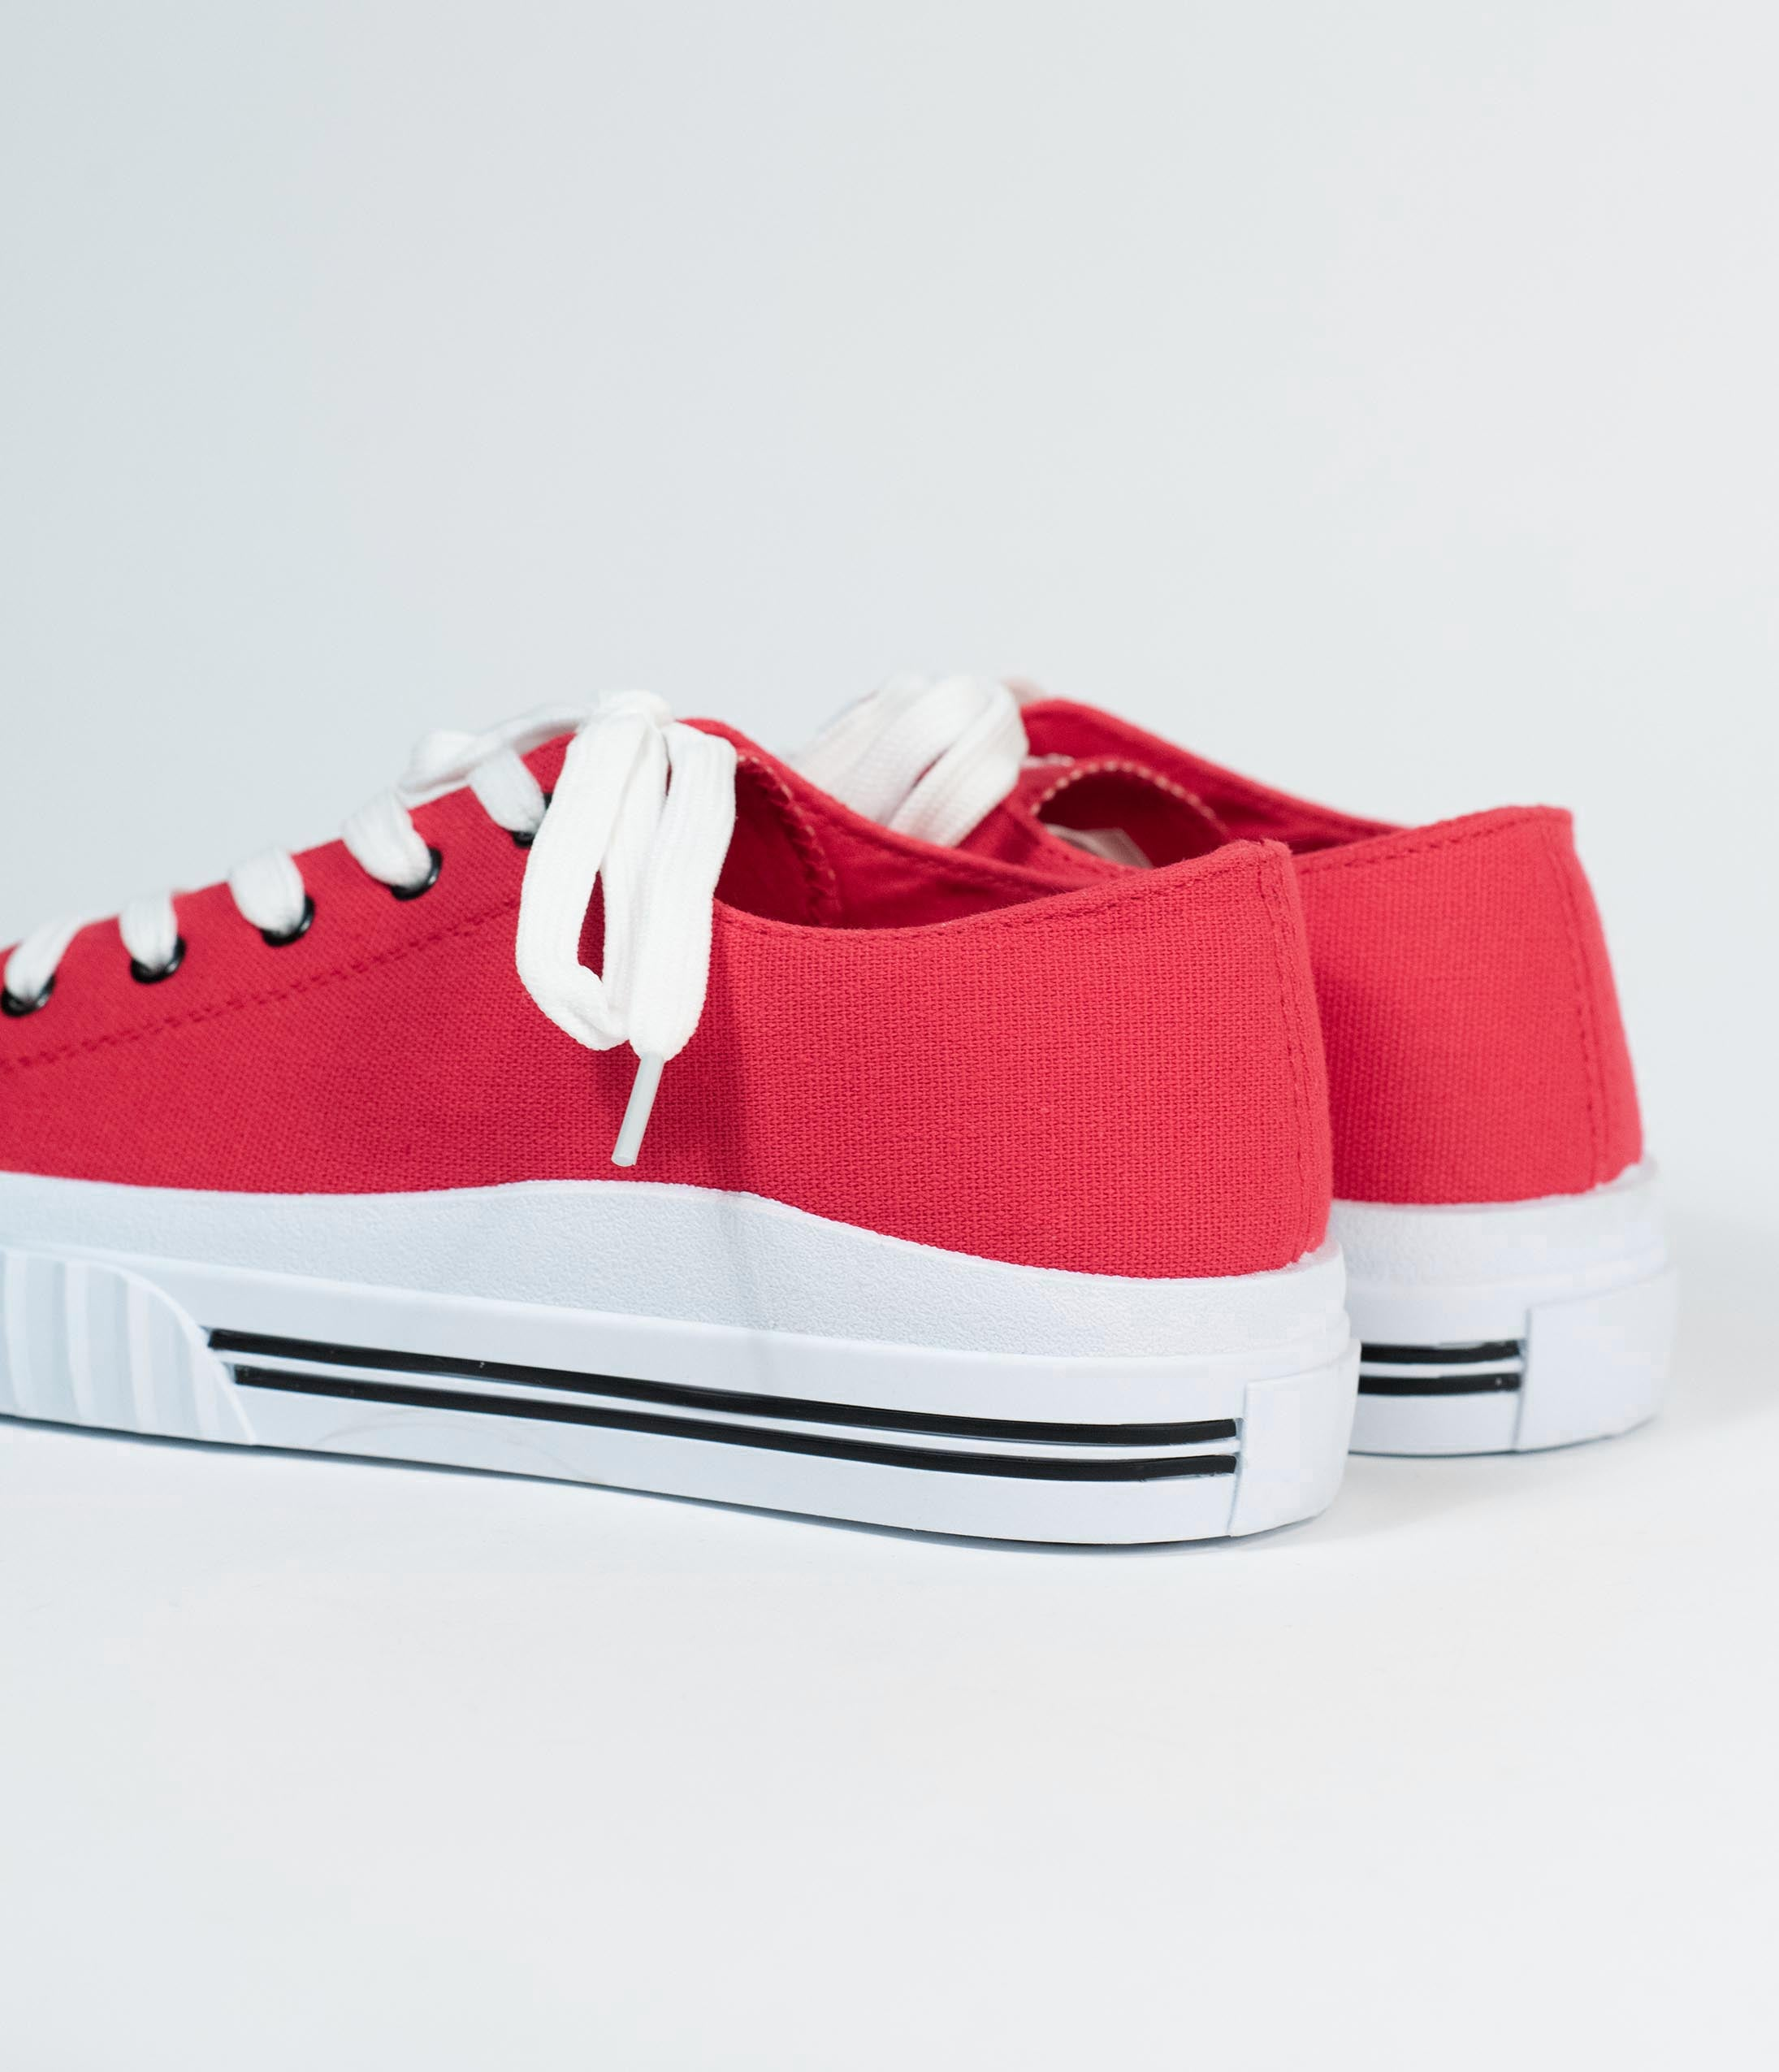 Red \u0026 White Lace Up Canvas Sneakers